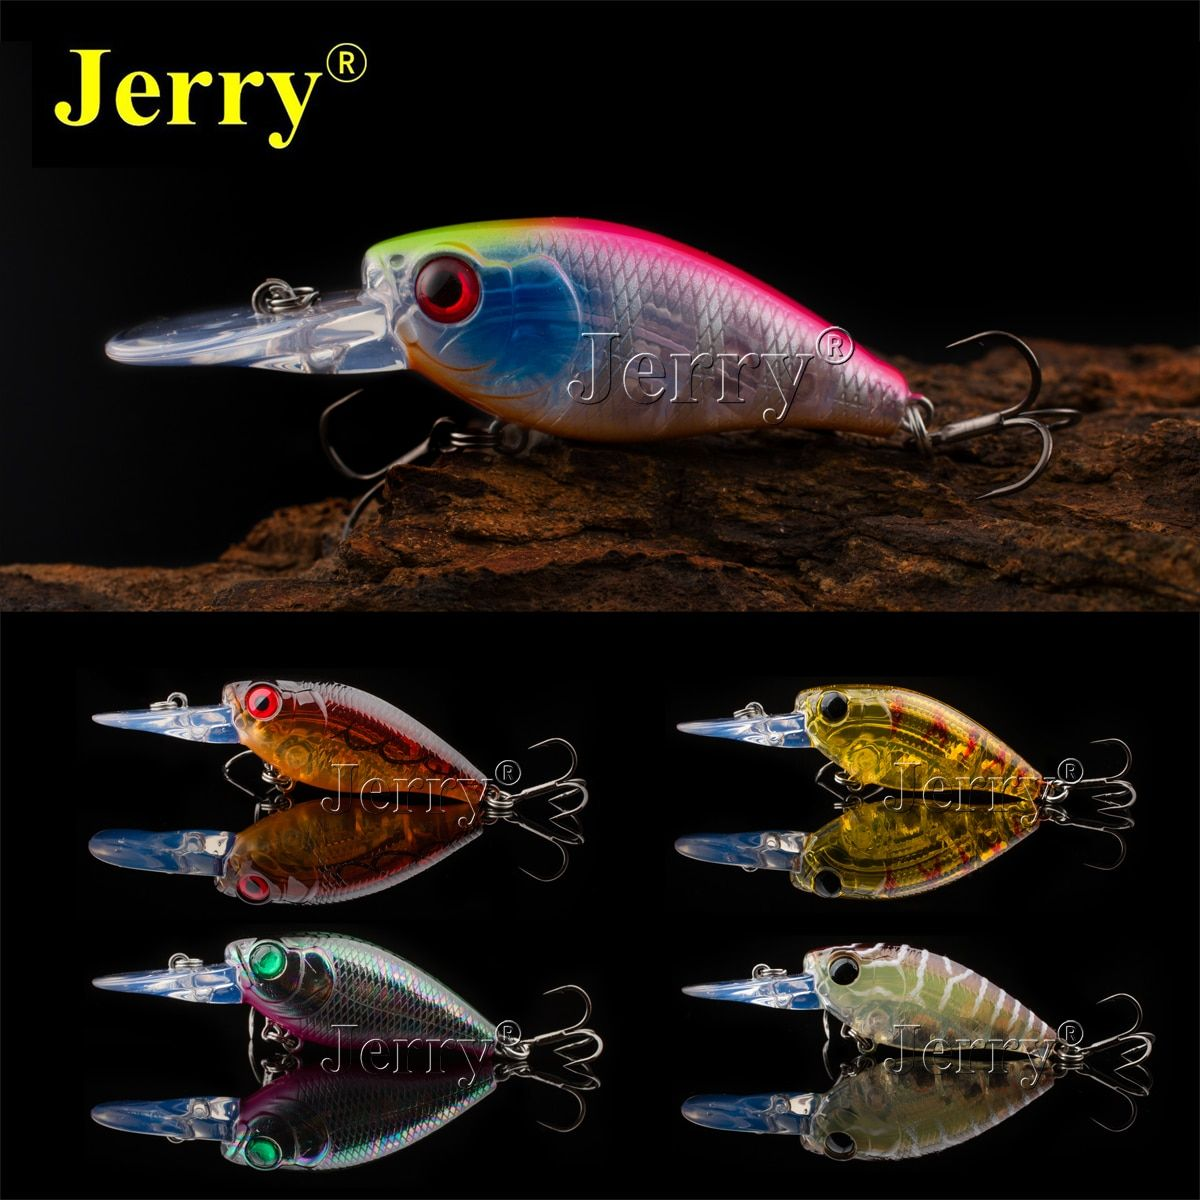 Jerry 4.5cm/1.8in 6g wobbler BKK pike perch Japan lure five colors slow sinking high quality deep plug hard crank bait